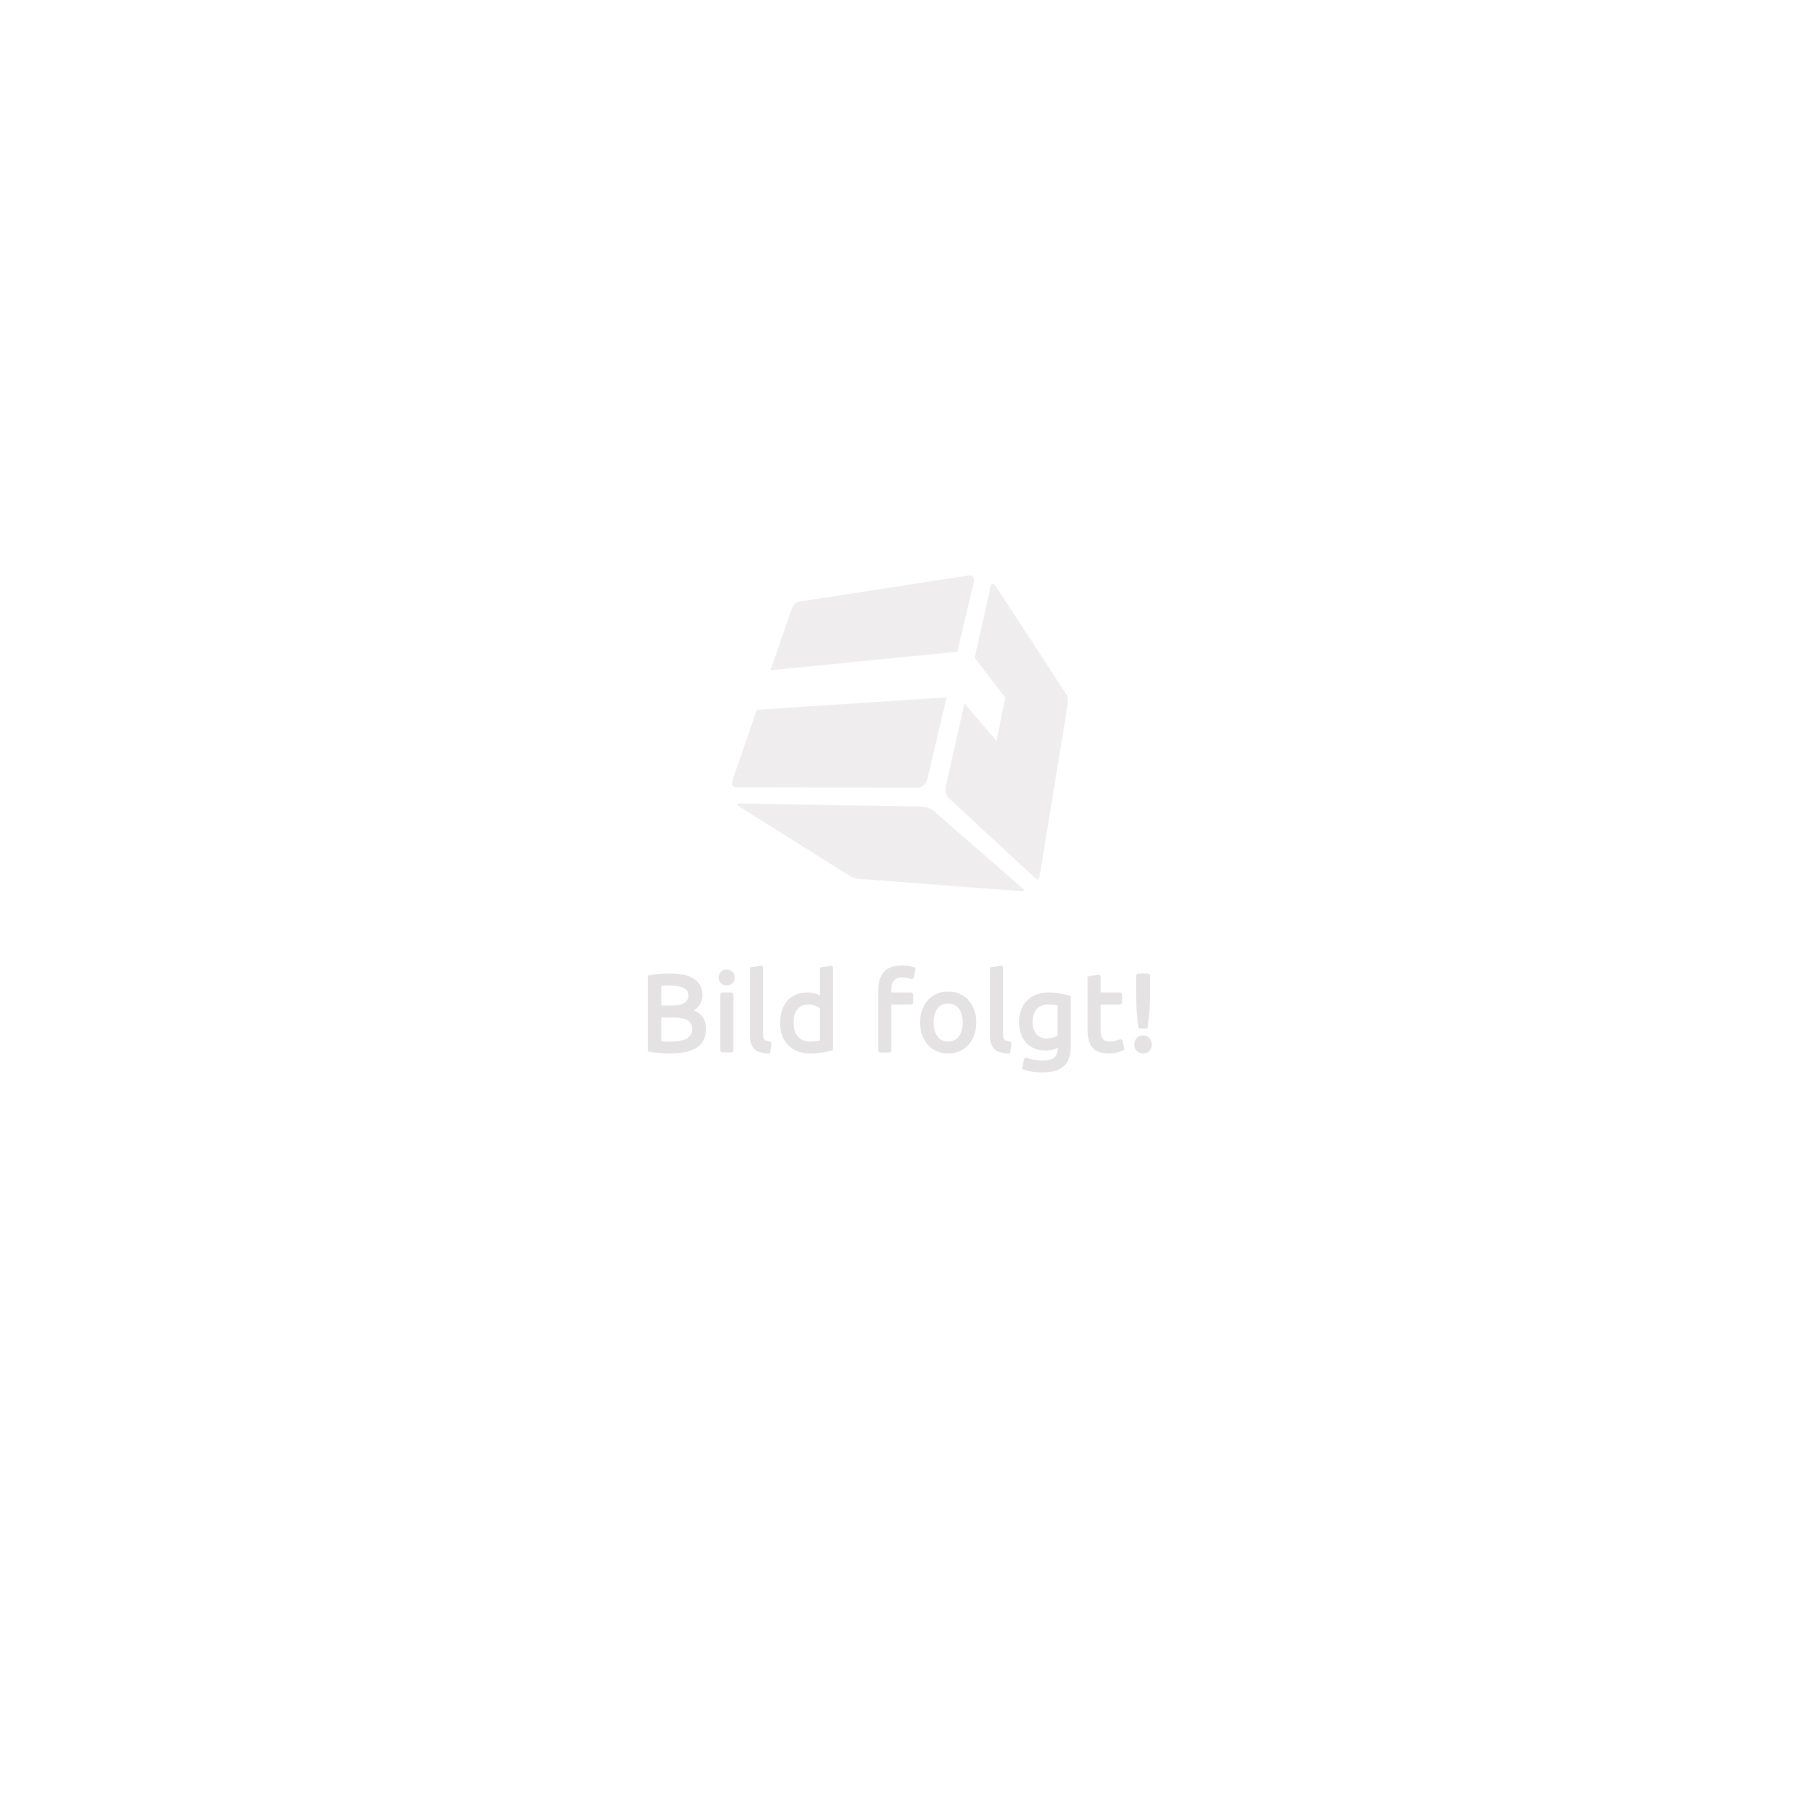 Alcove shelf with 4 levels